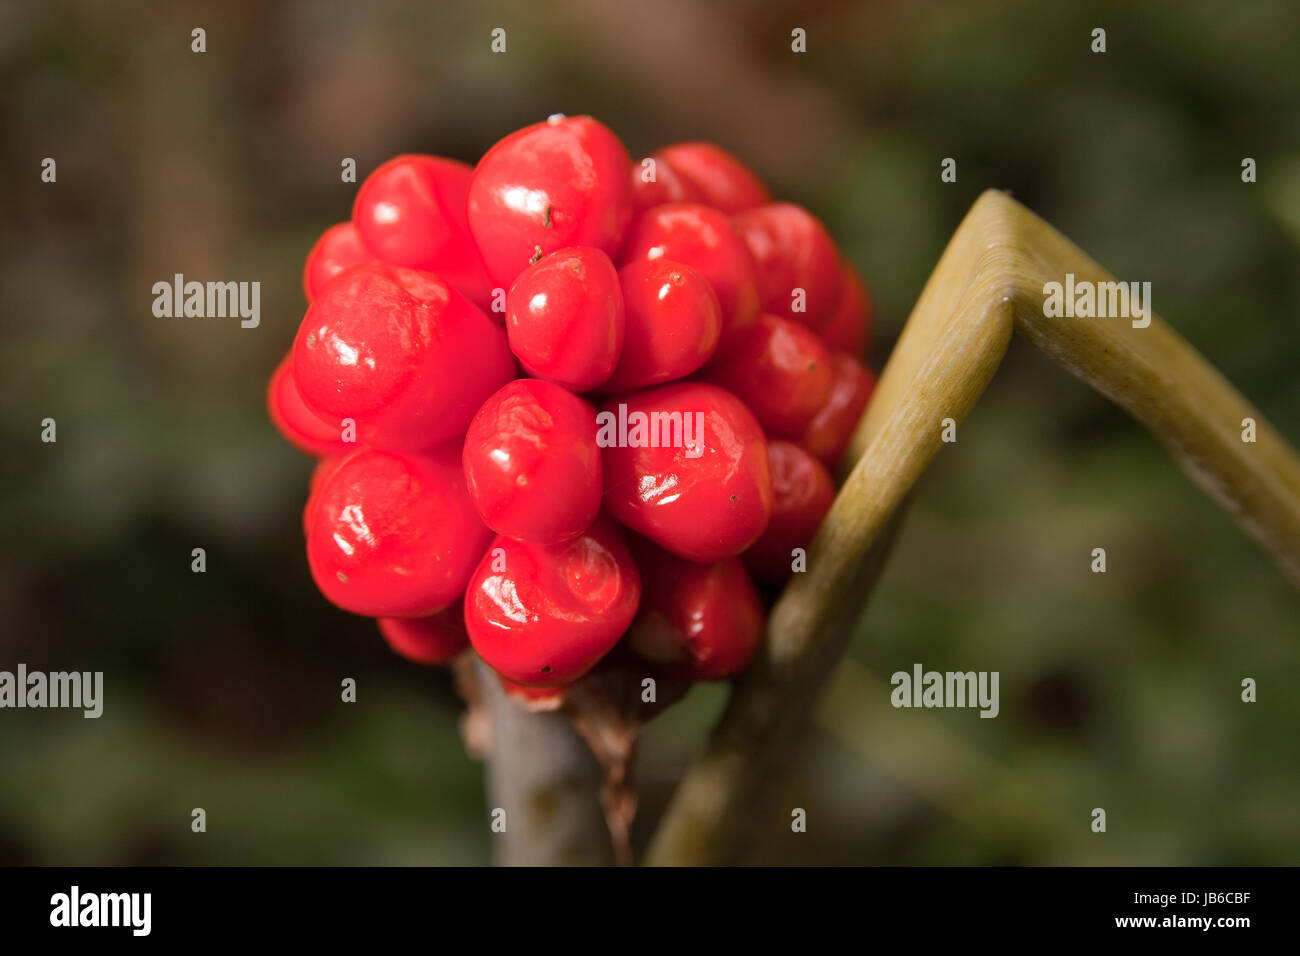 Arum maculatum red berries isolated on a blurry background. - Stock Image